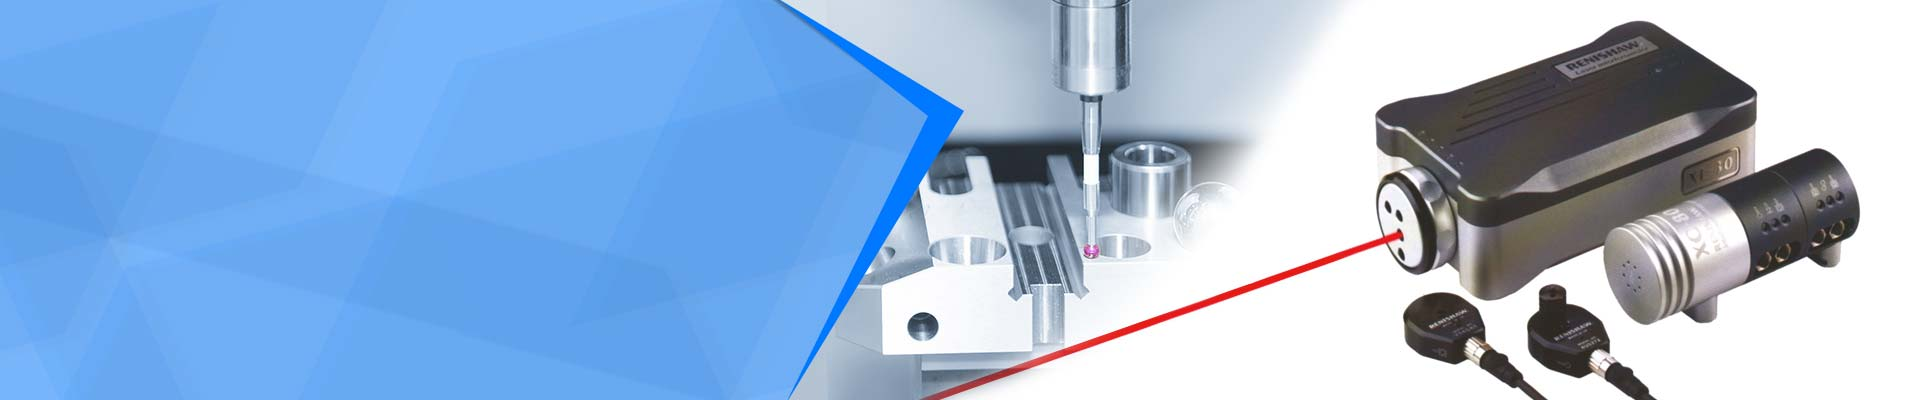 cmm-calibration-and-certification